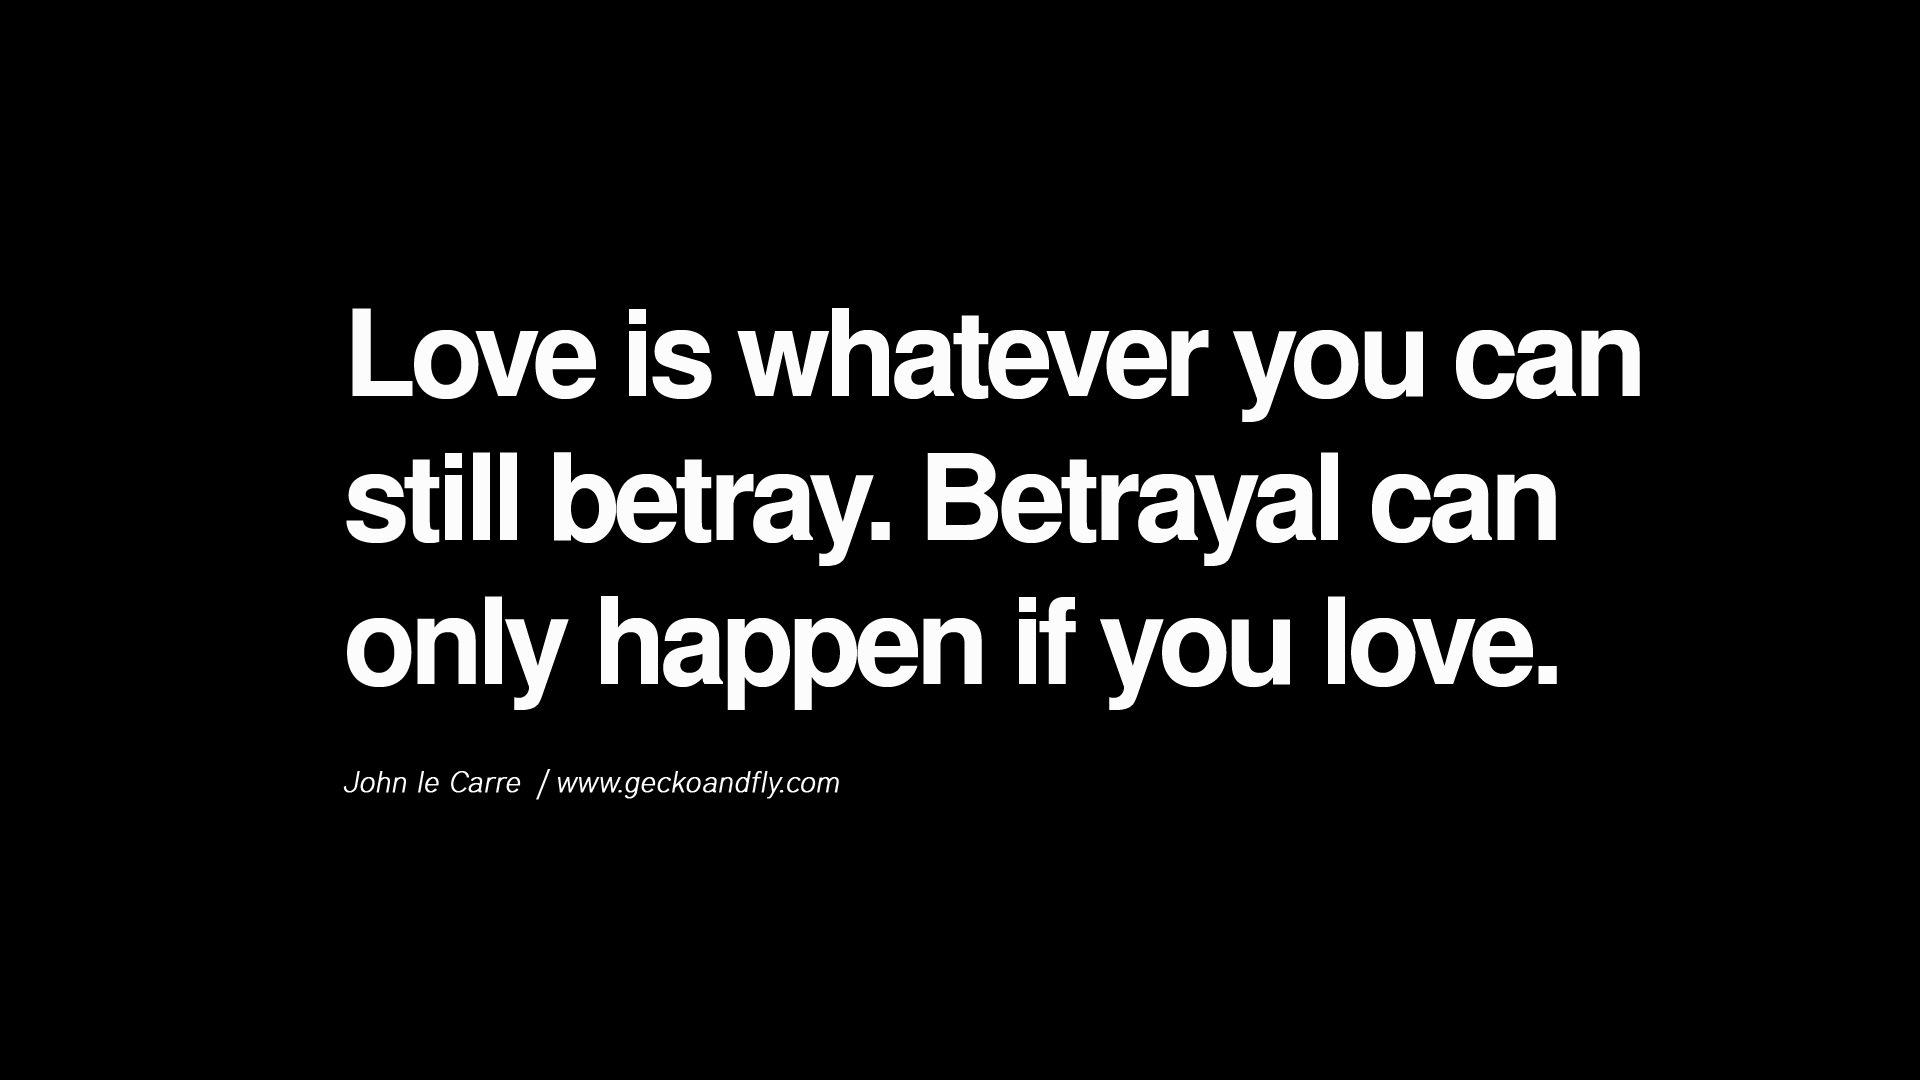 Quotes About Family Betrayal Quotesgram: Movie Quotes About Betrayal. QuotesGram